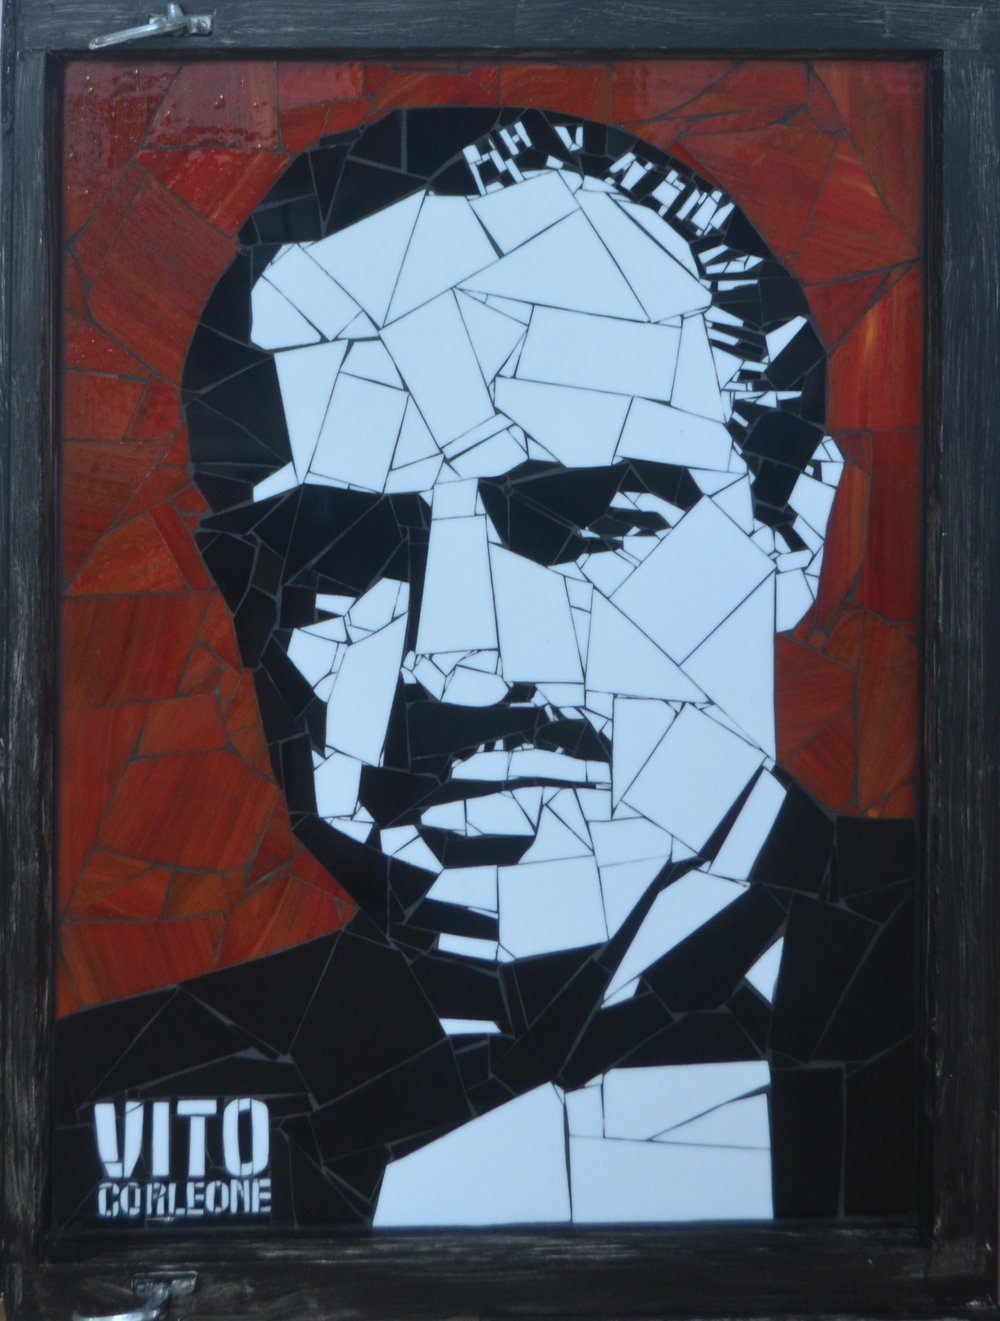 Vito Corleone  Danielle Fernandez, pop-art stained glass mosaic, sculpted on antique/distressed window pane, 910mm x 680mm. Vito Corleone was Marlon Brando's character in the classic movie The Godfather  $5,900.00